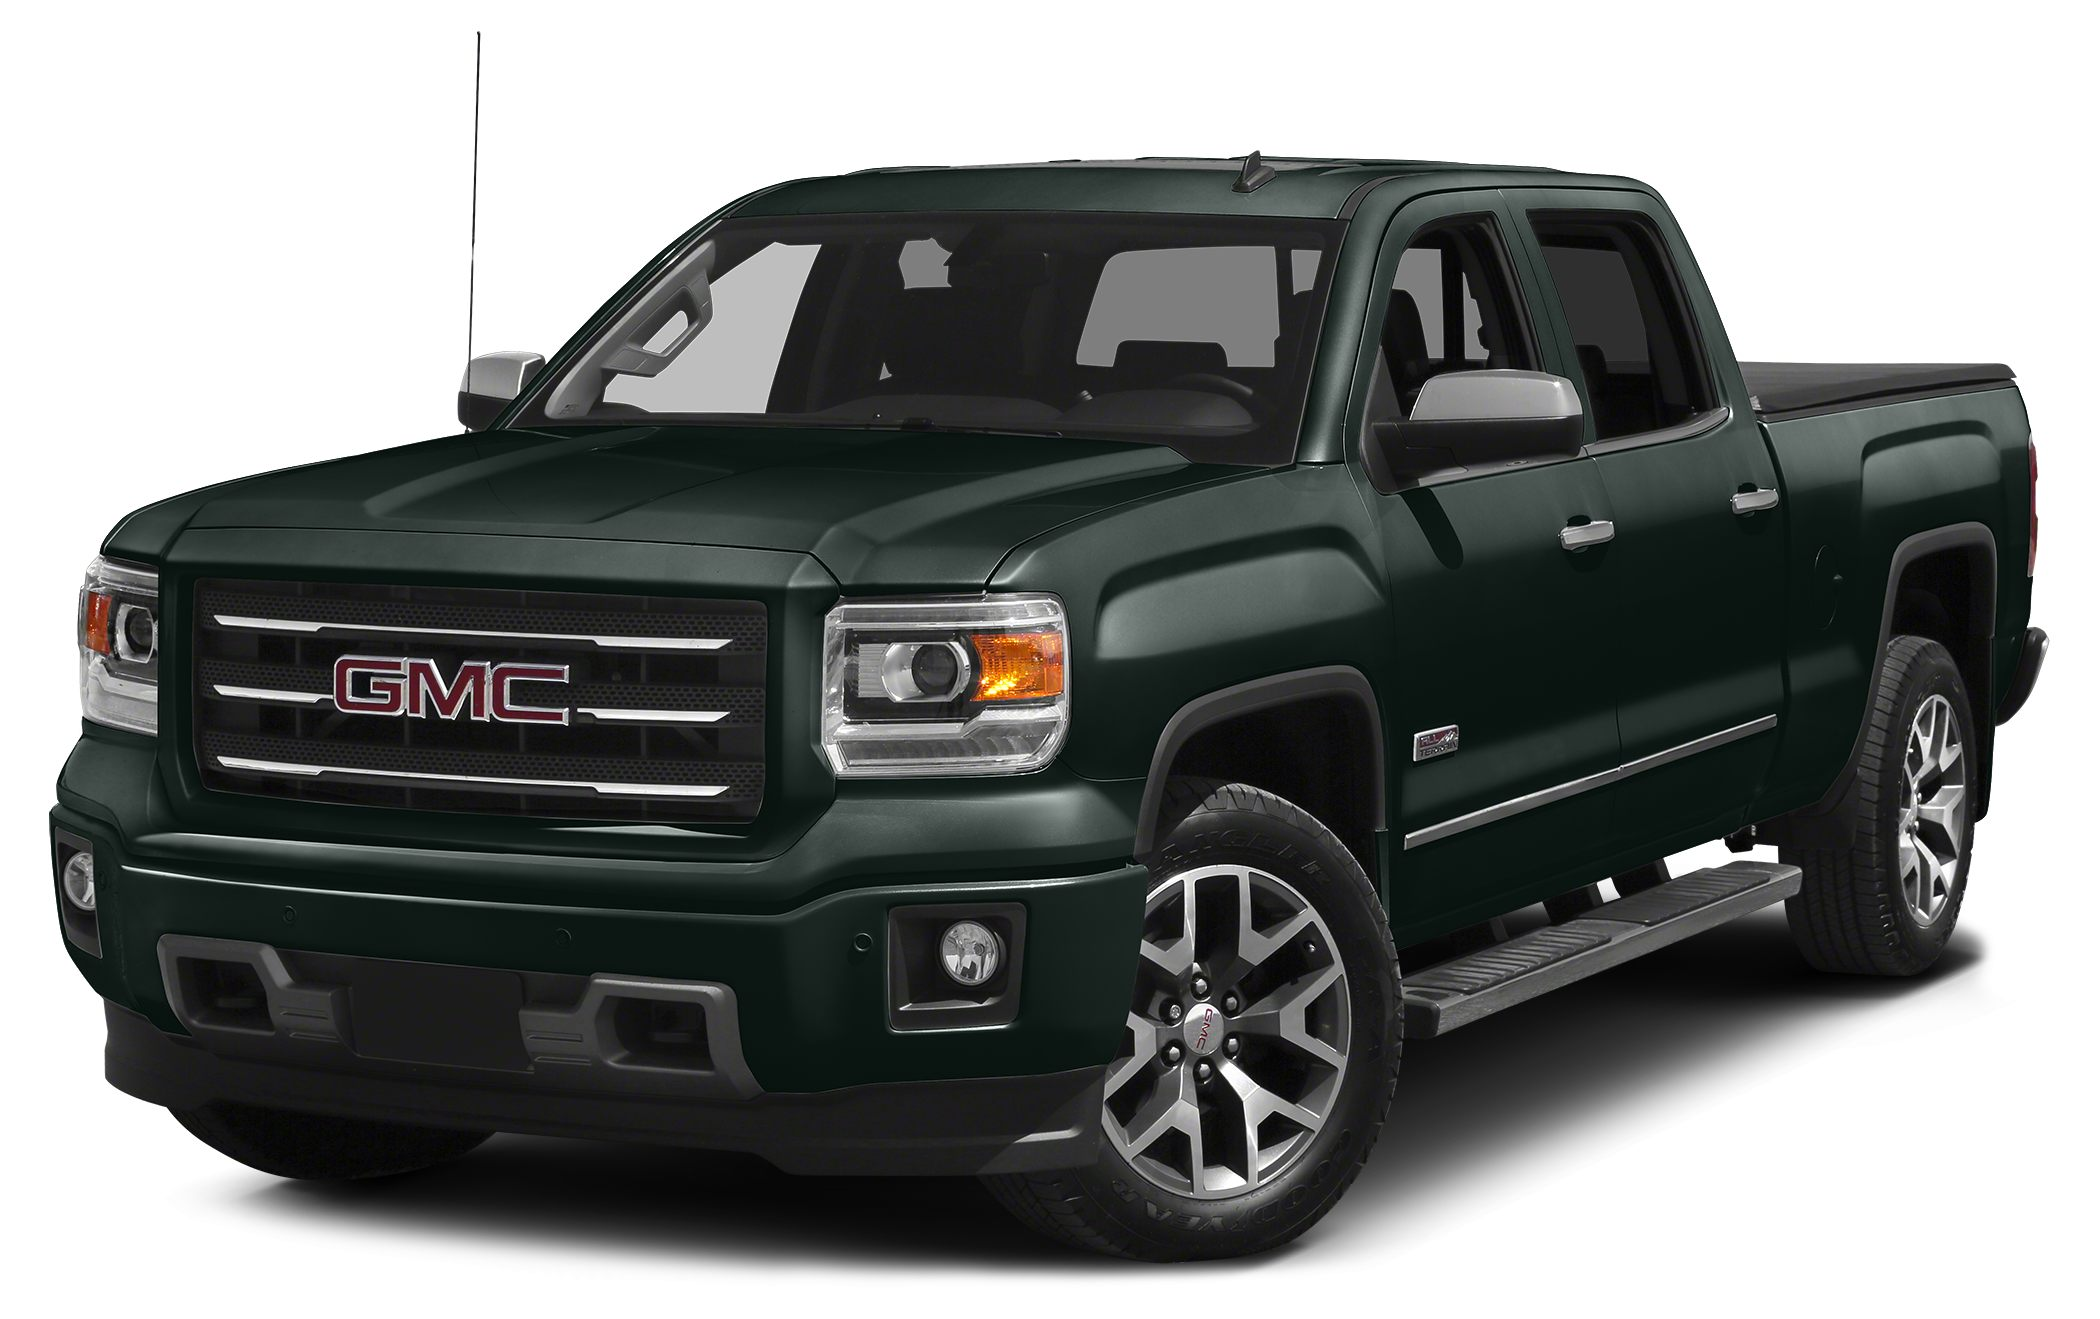 2015 GMC Sierra 1500 SLT BETTER THAN NEW LEVELED W NITO GRAPLER G-2 33S TRUED AND HIGH SPEED B